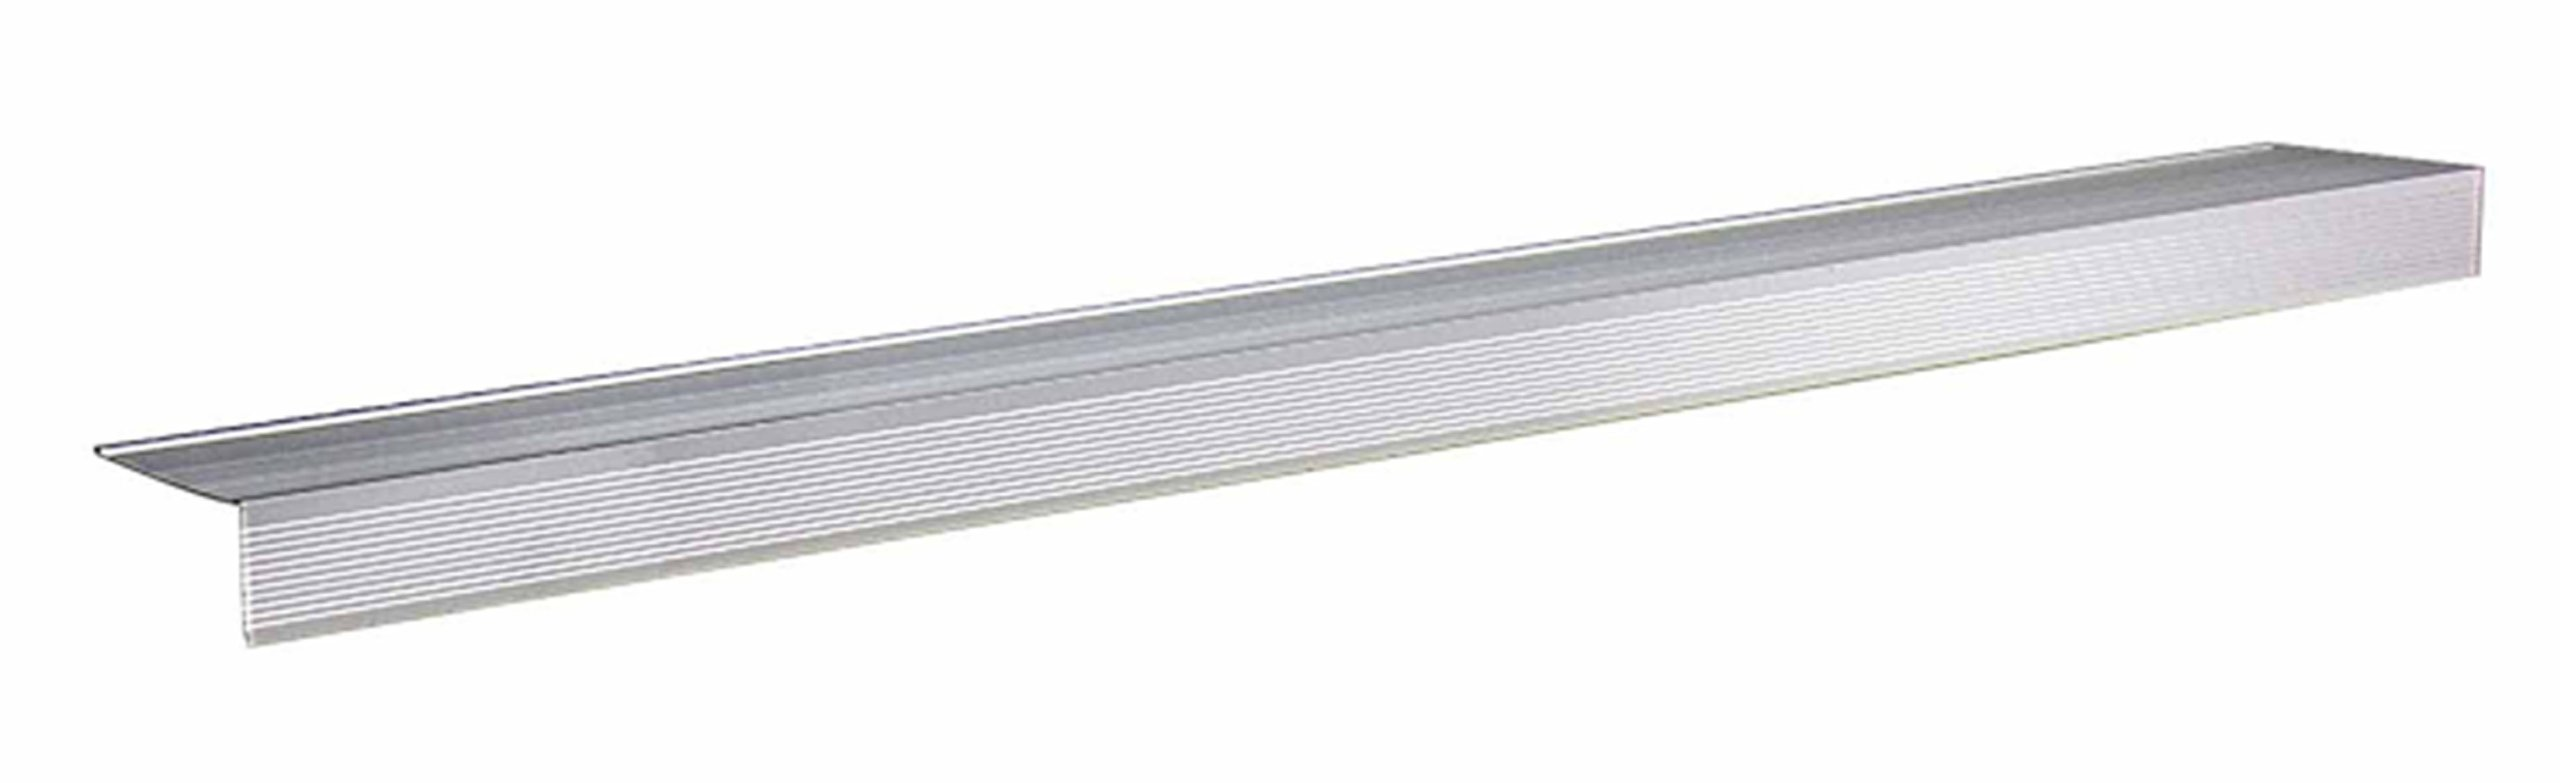 M-D Building Products 81869 2-3/4-Inch by 1-1/2-Inch by 36-Inch TH026 Sill Nosing, Mill